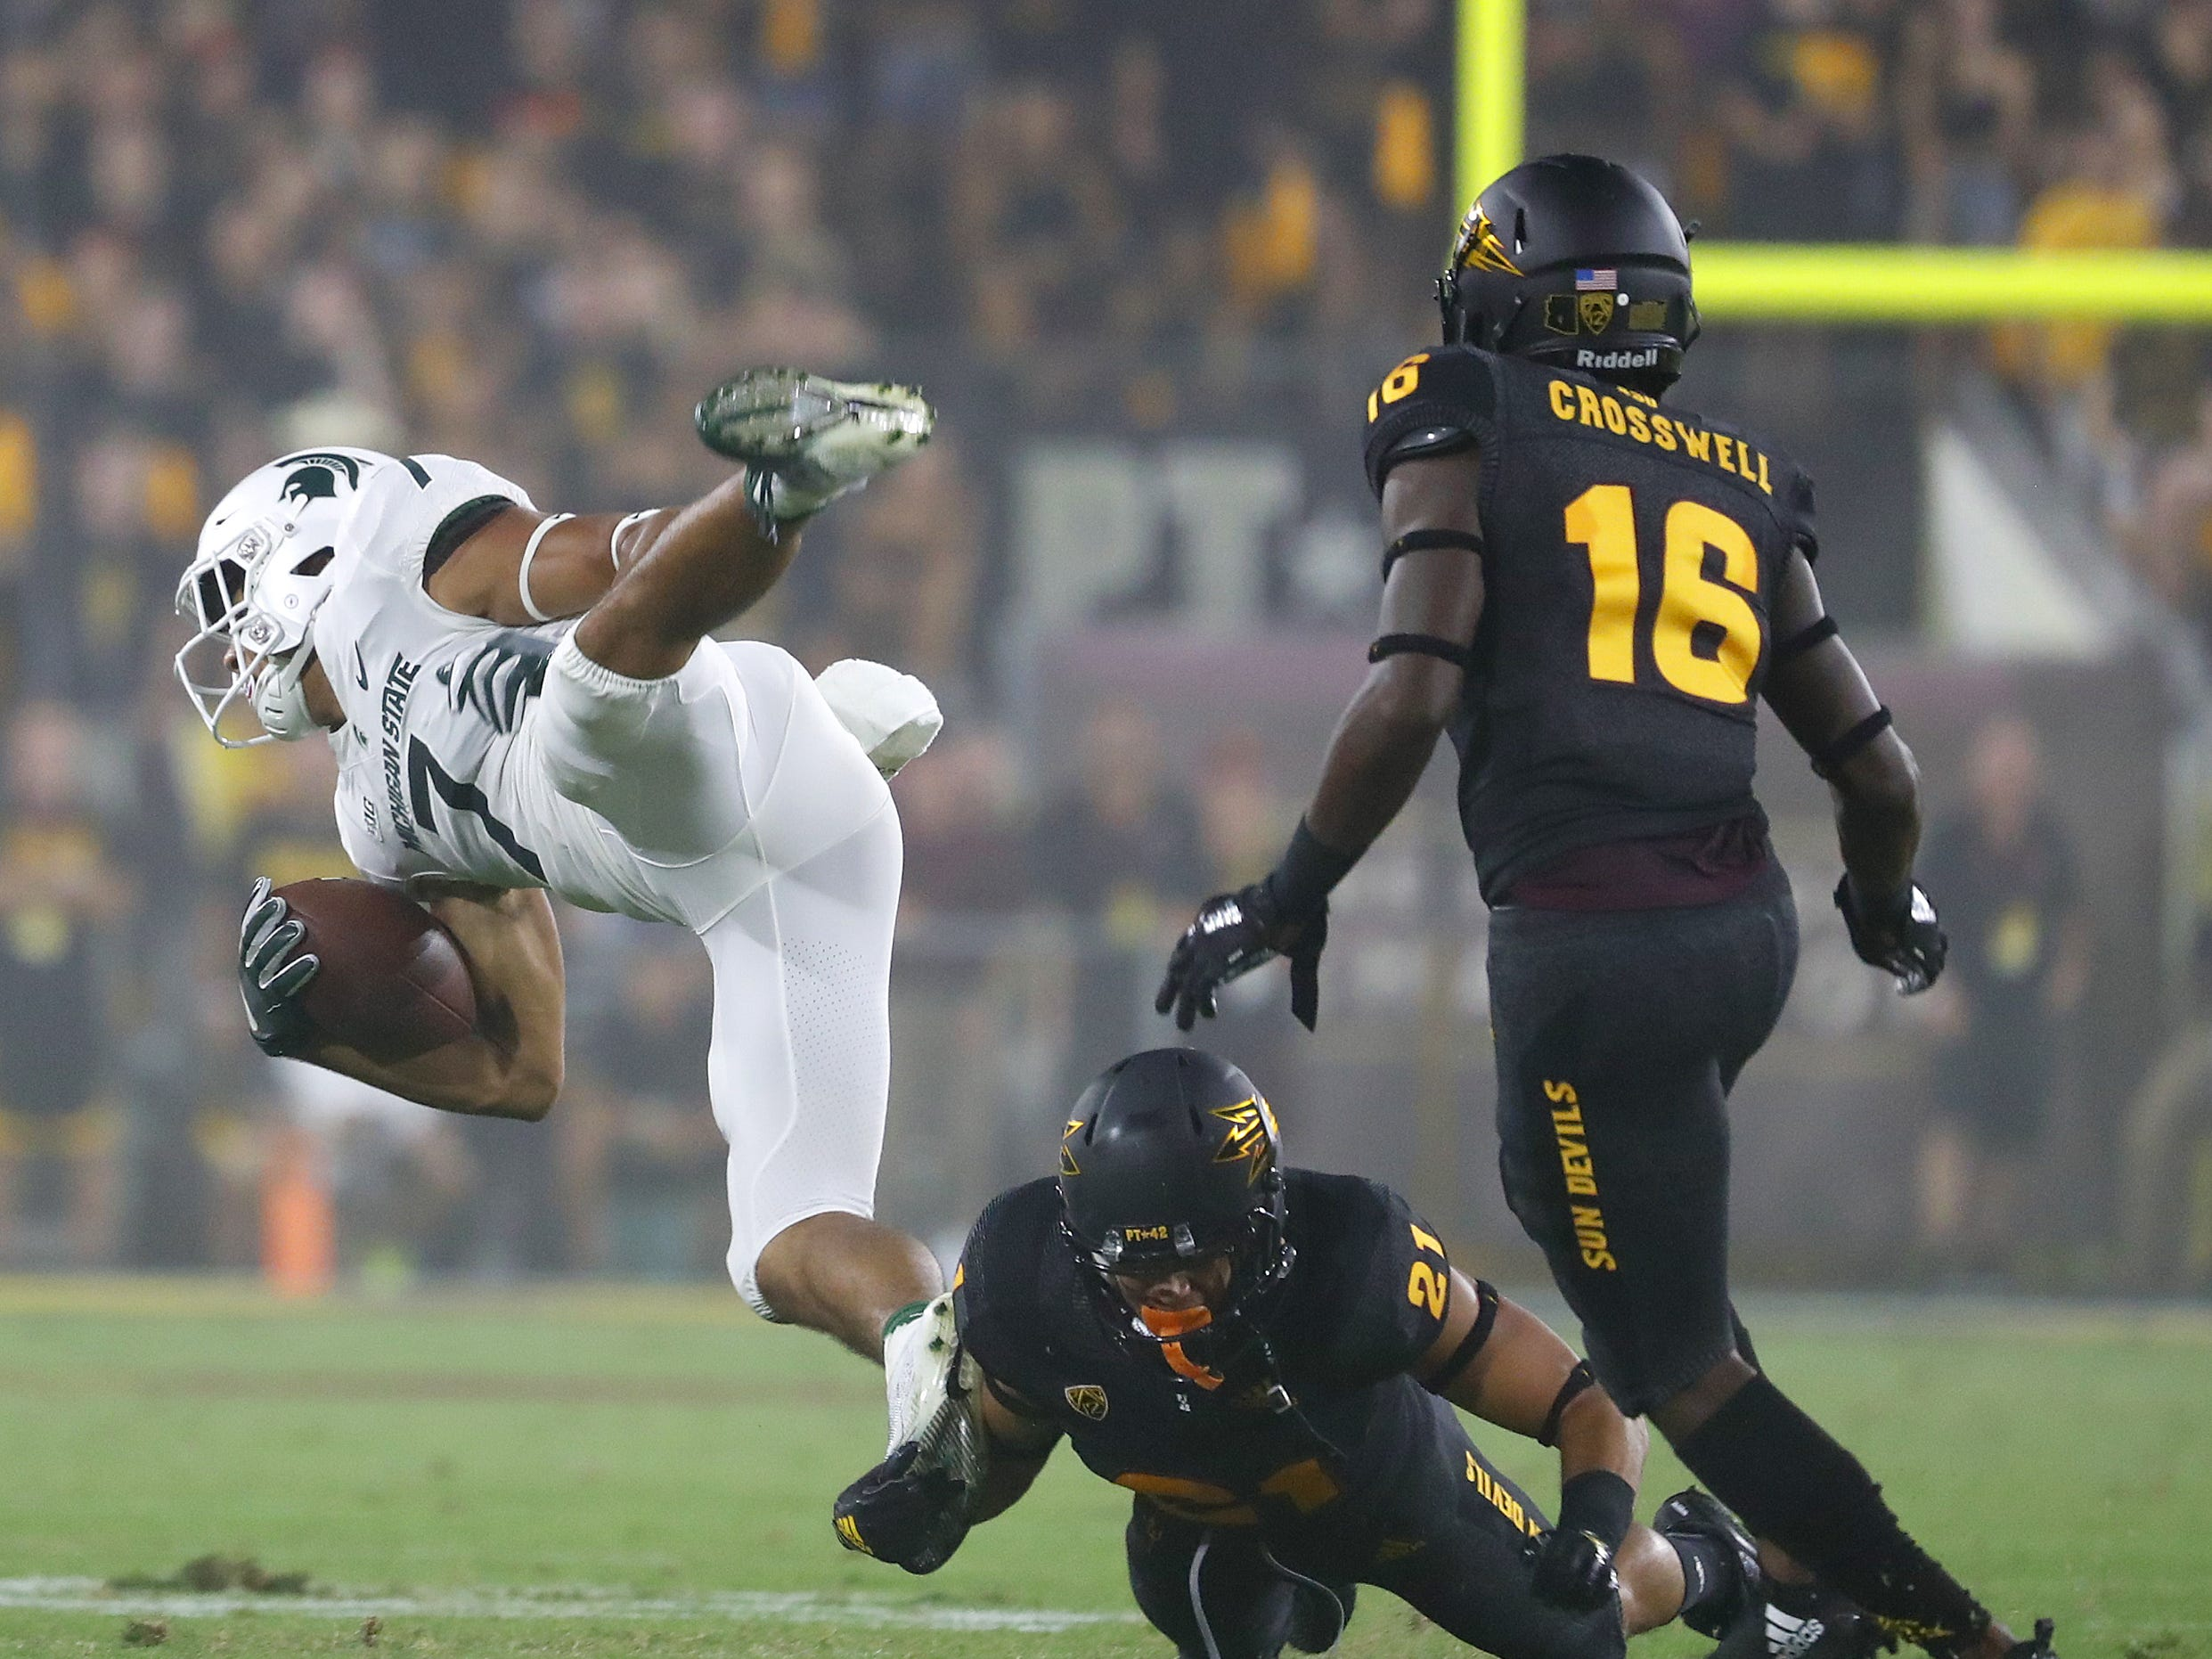 Arizona State Sun Devils cornerback Terin Adams (21) tackles Michigan State's Cody White (7) during the second quarter at Sun Devil Stadium in Tempe, Ariz. on Sept. 8, 2018.